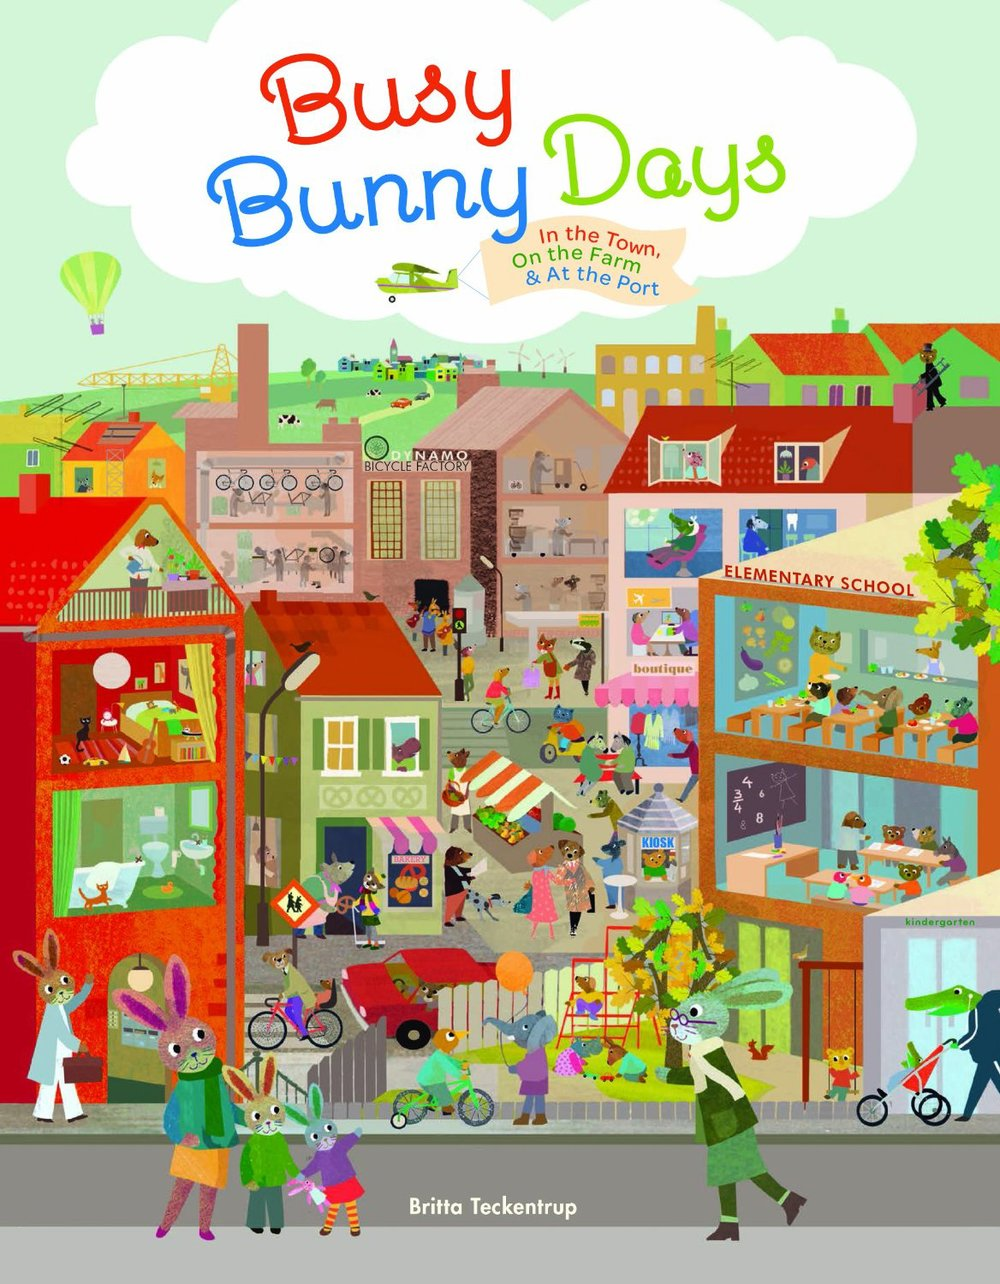 busy-bunny-days-in-the-town-on-the-farm-at-the-port2.jpg